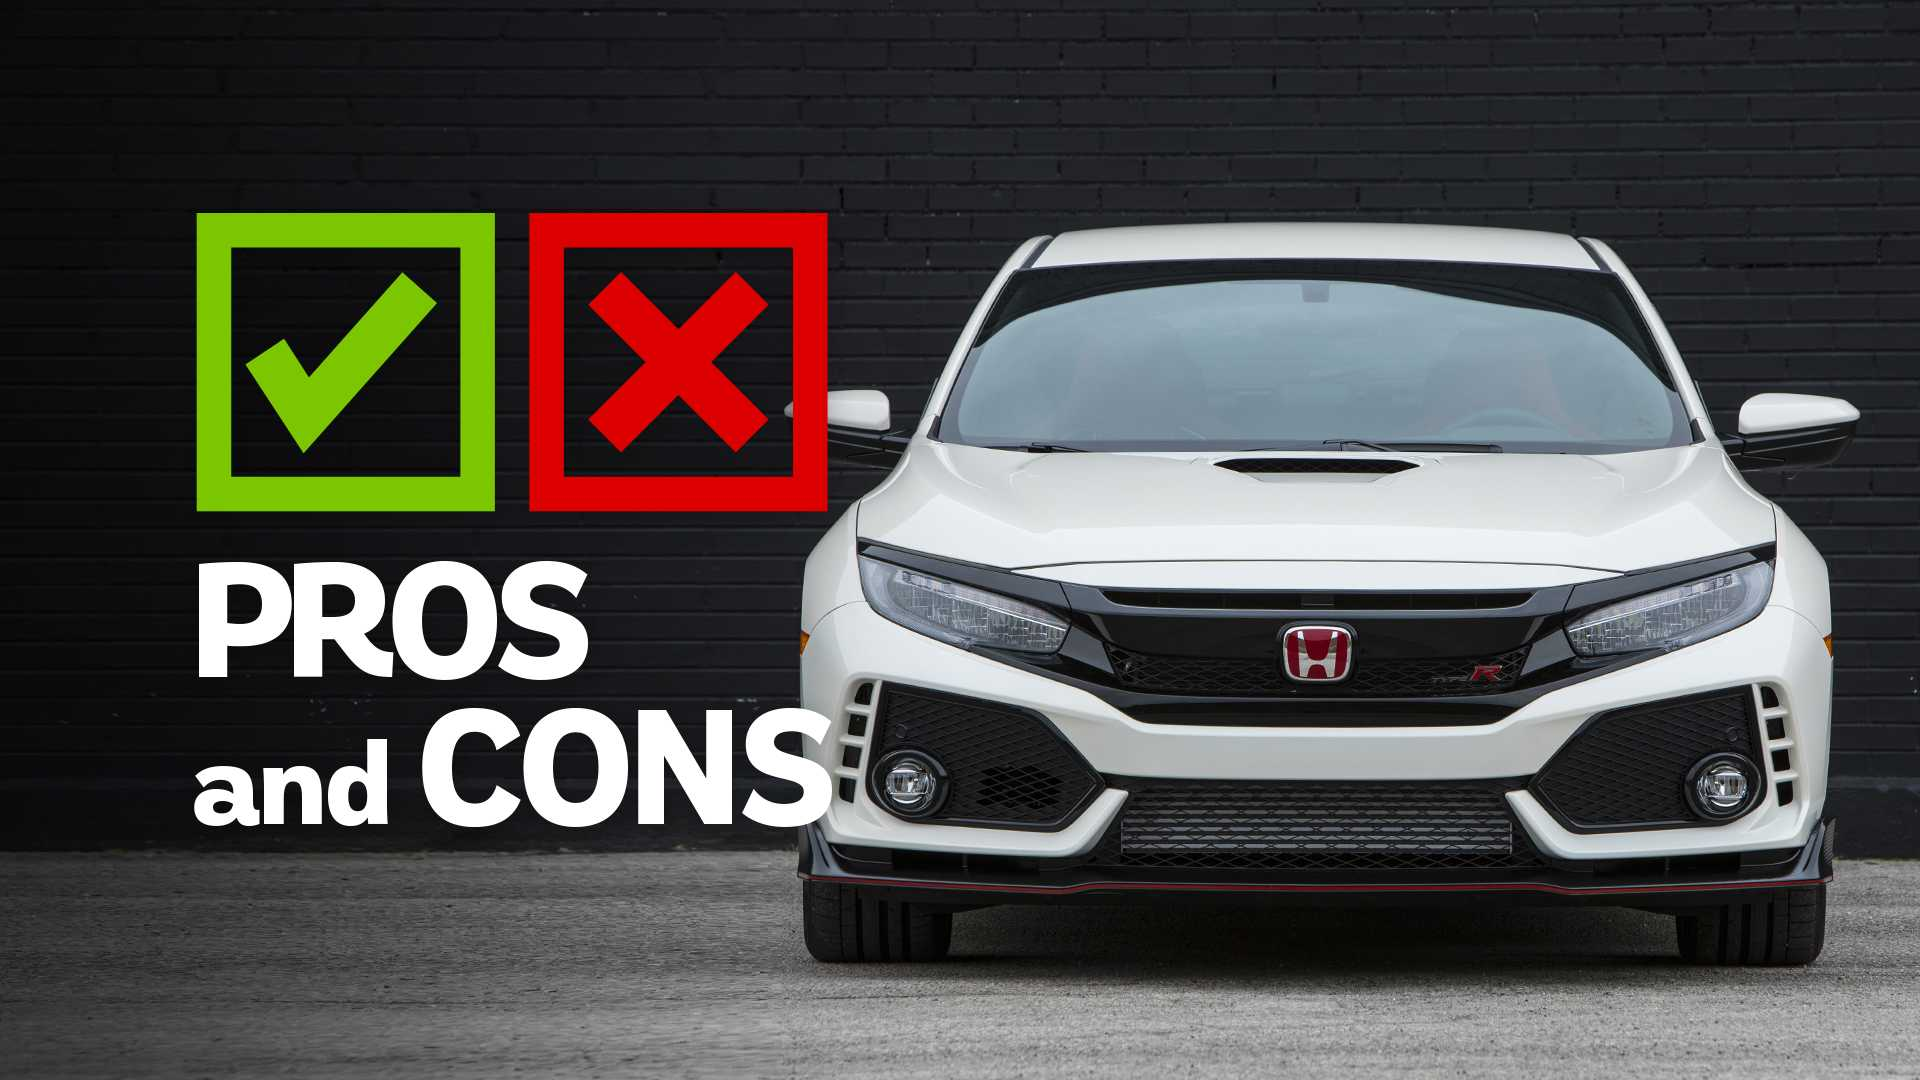 2019 Honda Civic Type R Pros And Cons